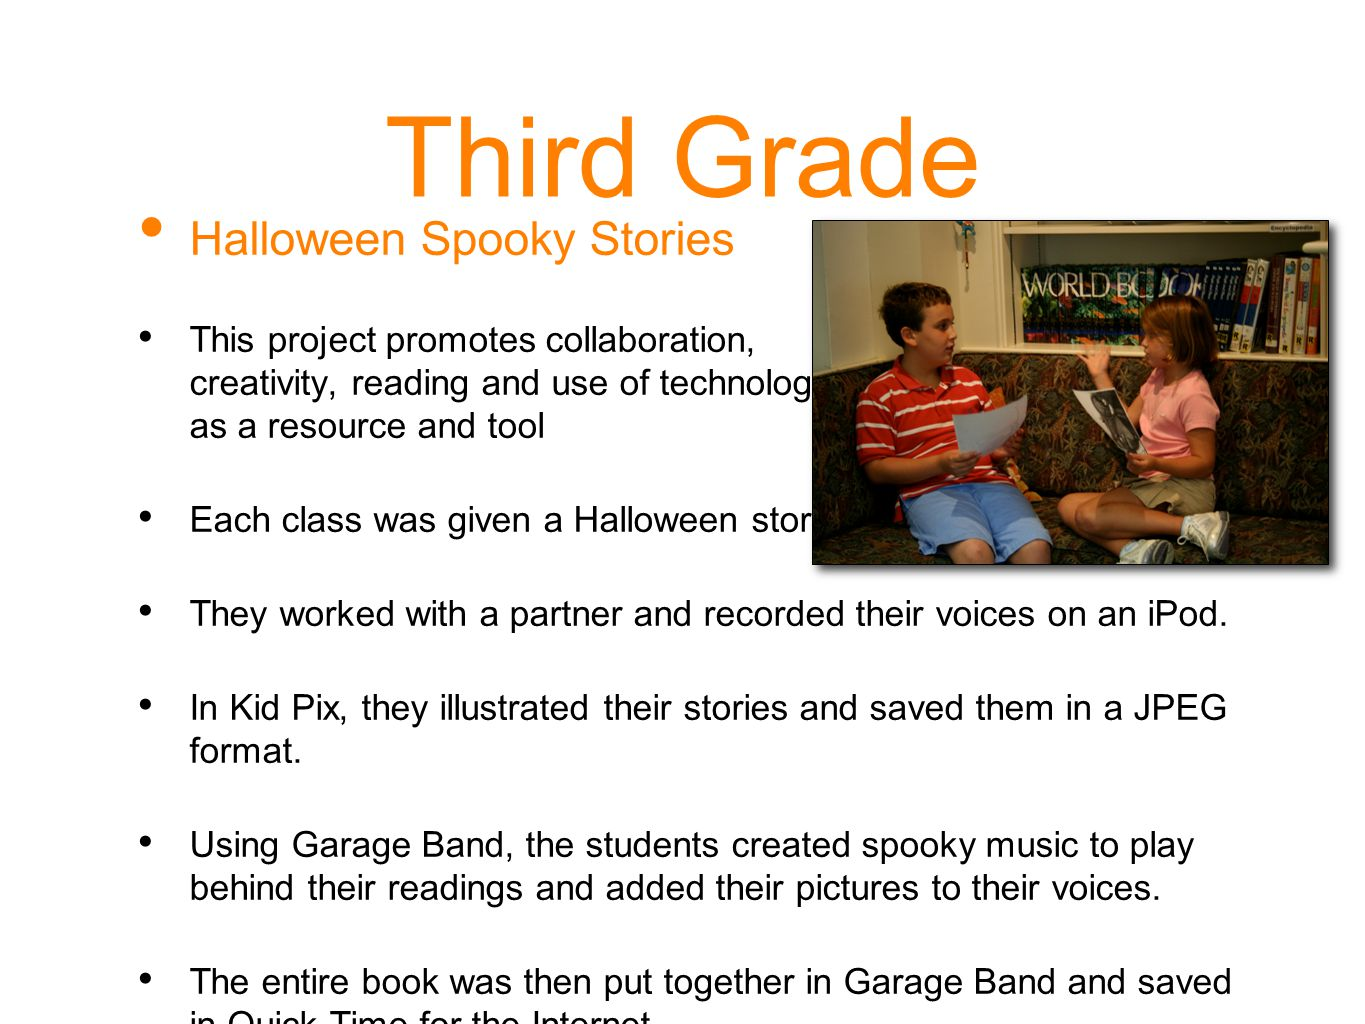 Third Grade Halloween Spooky Stories